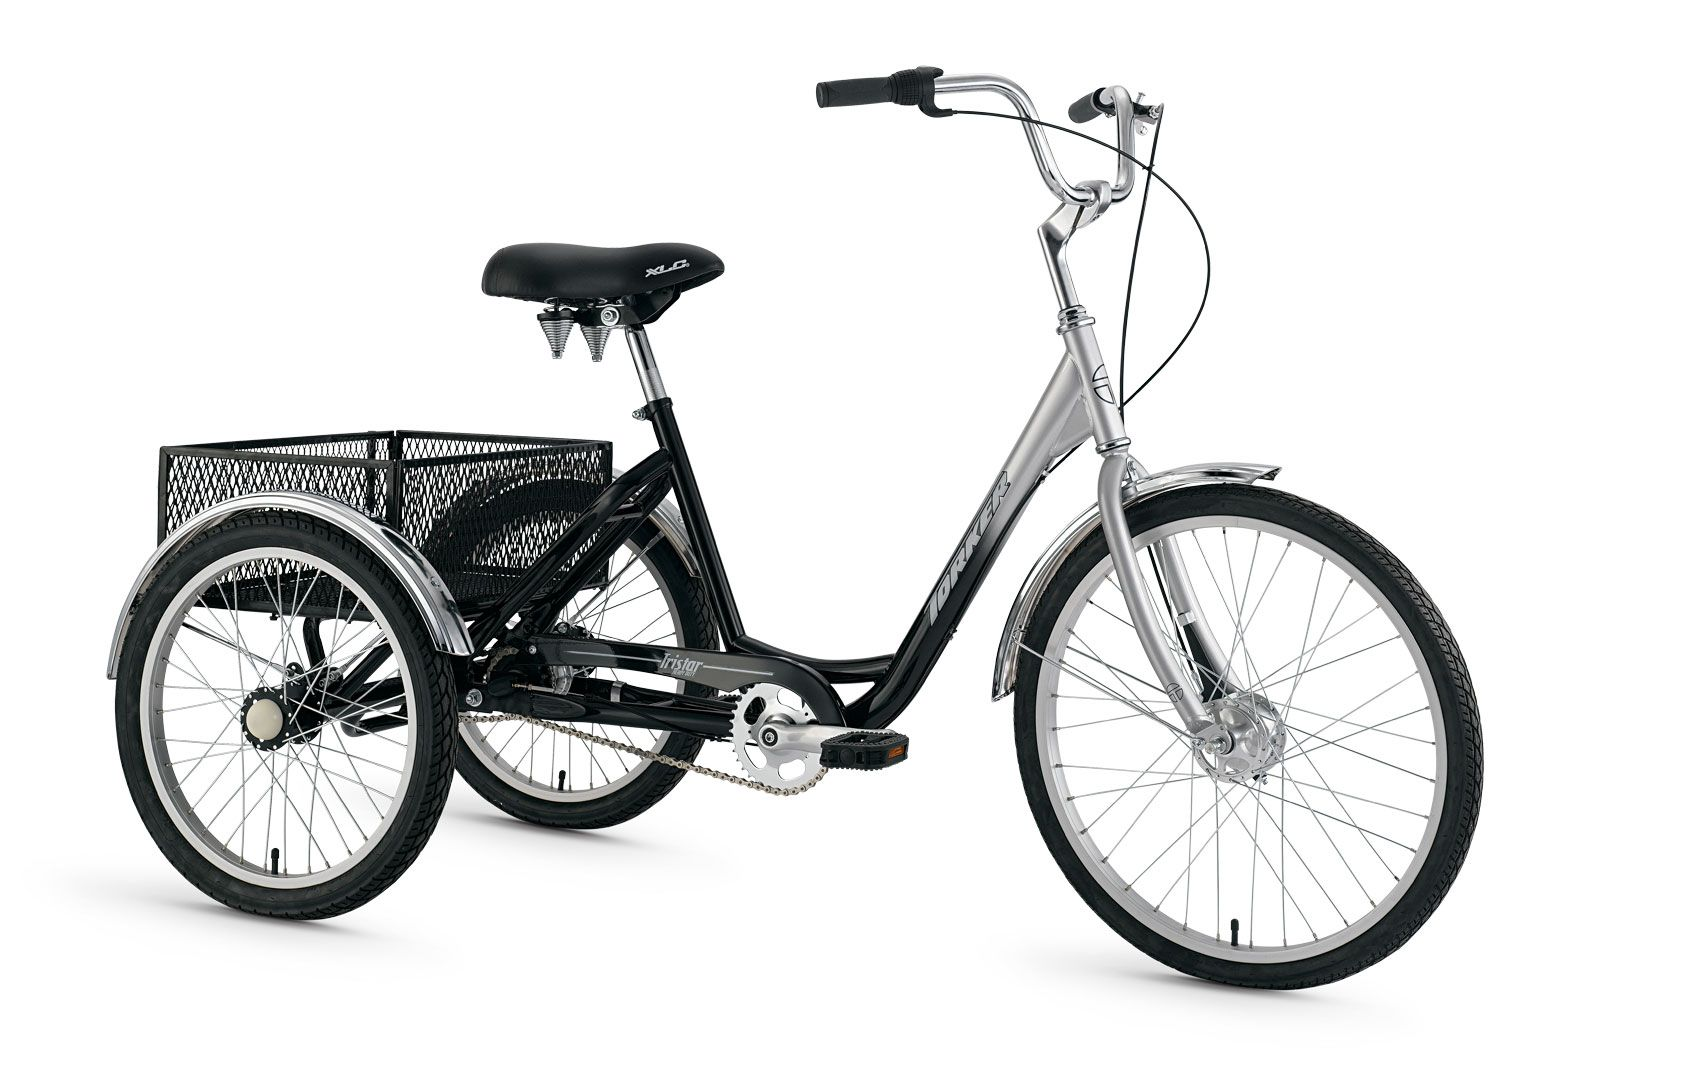 Tristar Hd This Is The Industrial Tricycle Beefed Up And Built Tough The Tristar Hd Is Constructed For Moving Tool Electric Tricycle Tricycle Tricycle Bike